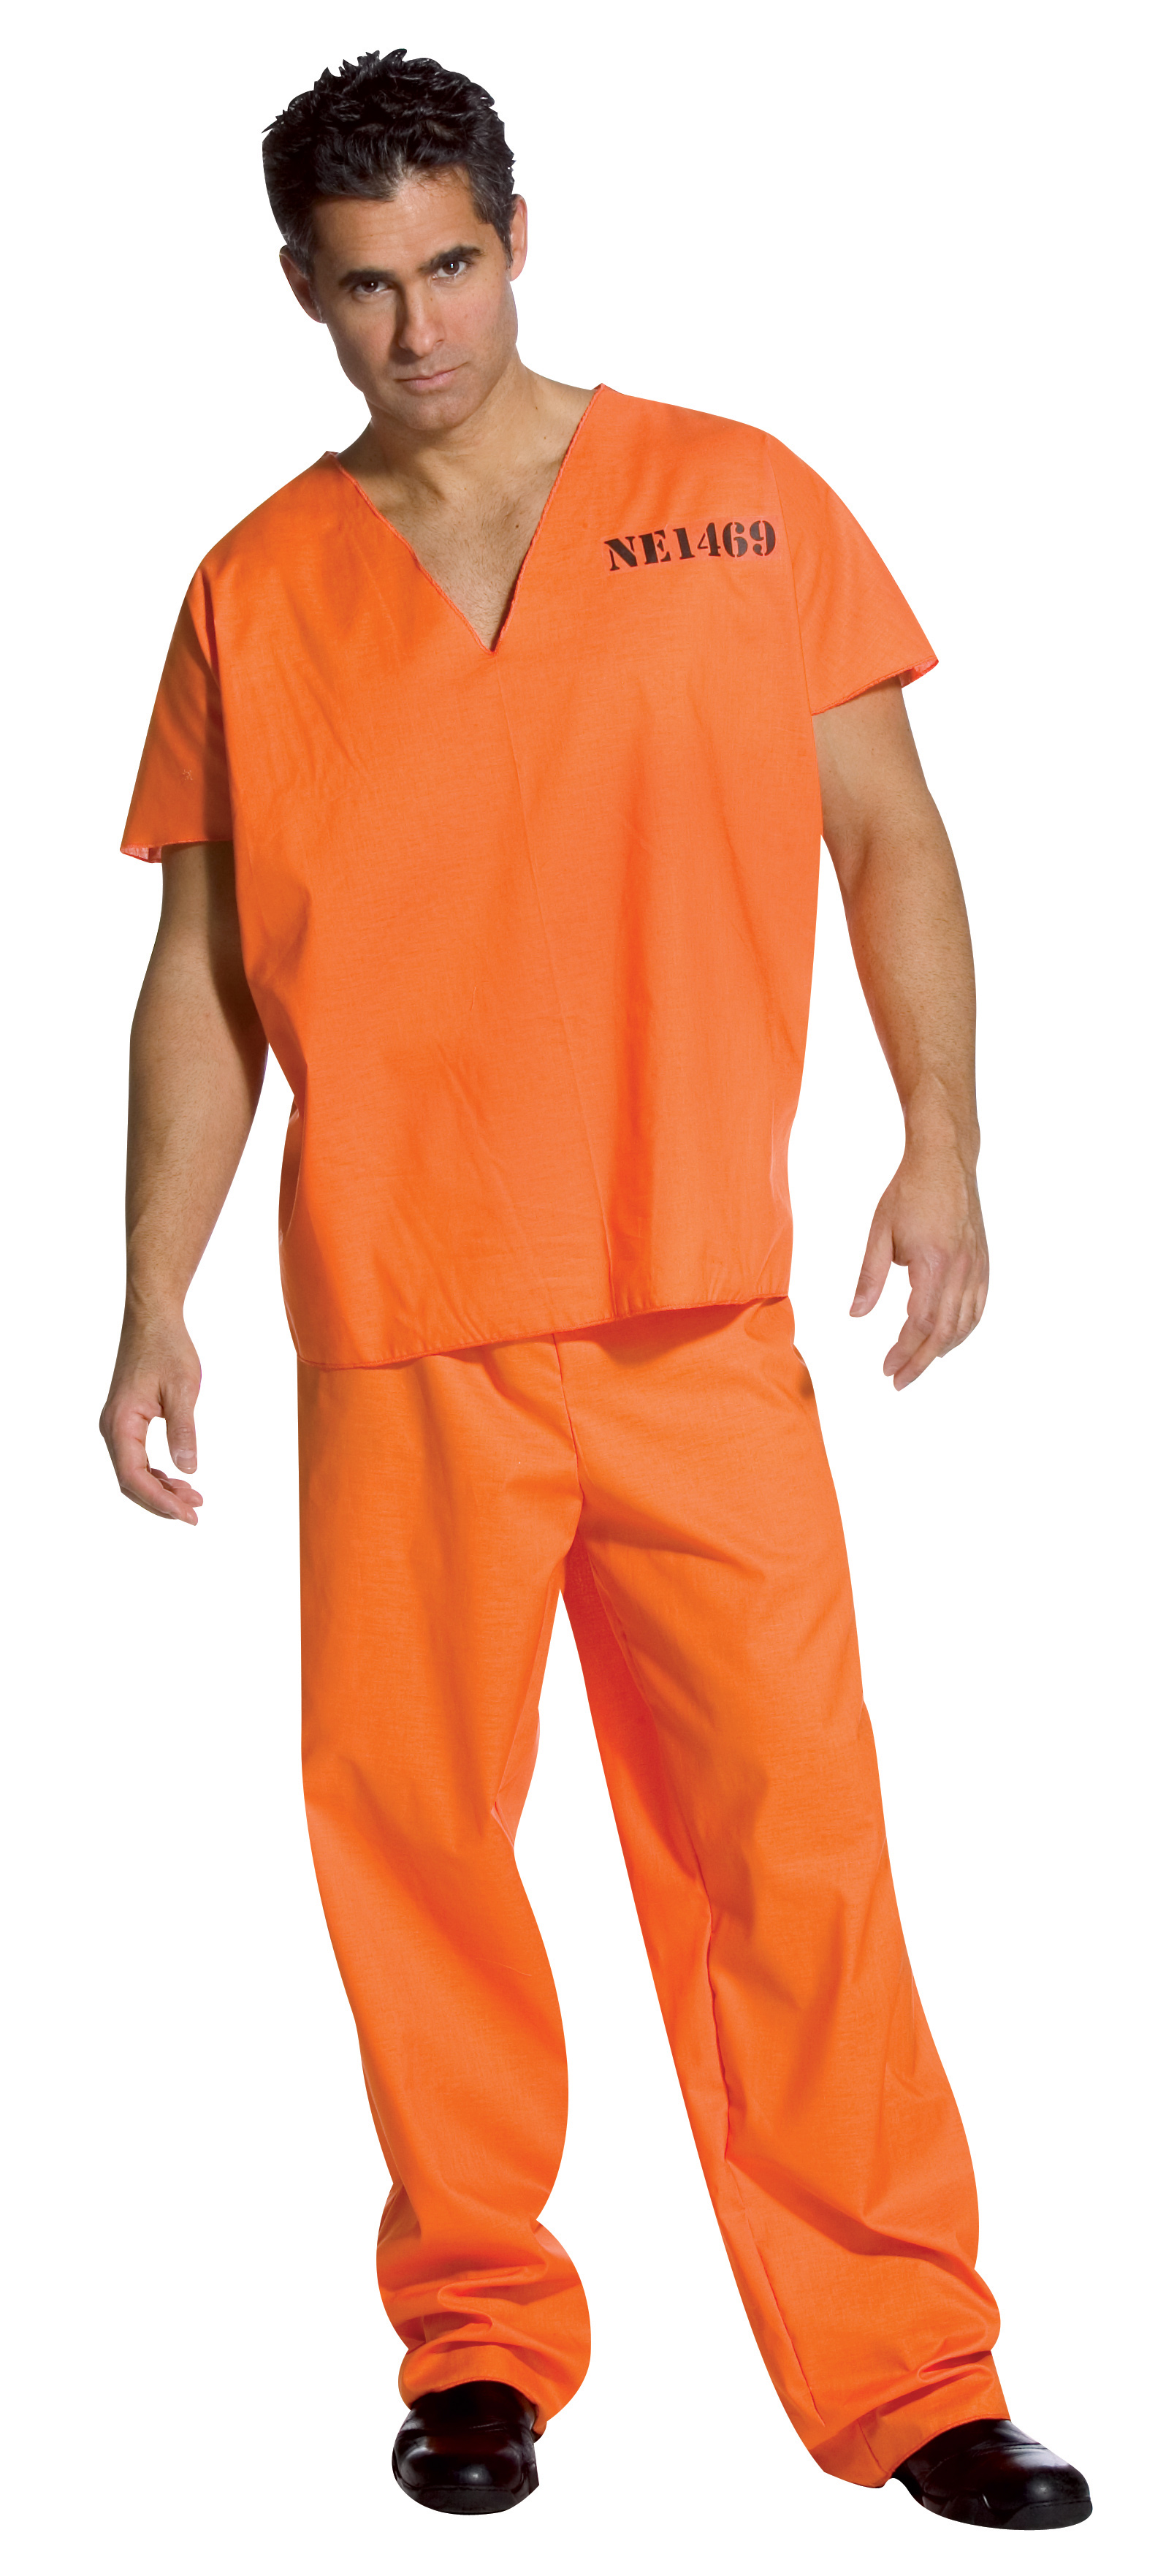 Orange Jail Jumpsuit Meaning